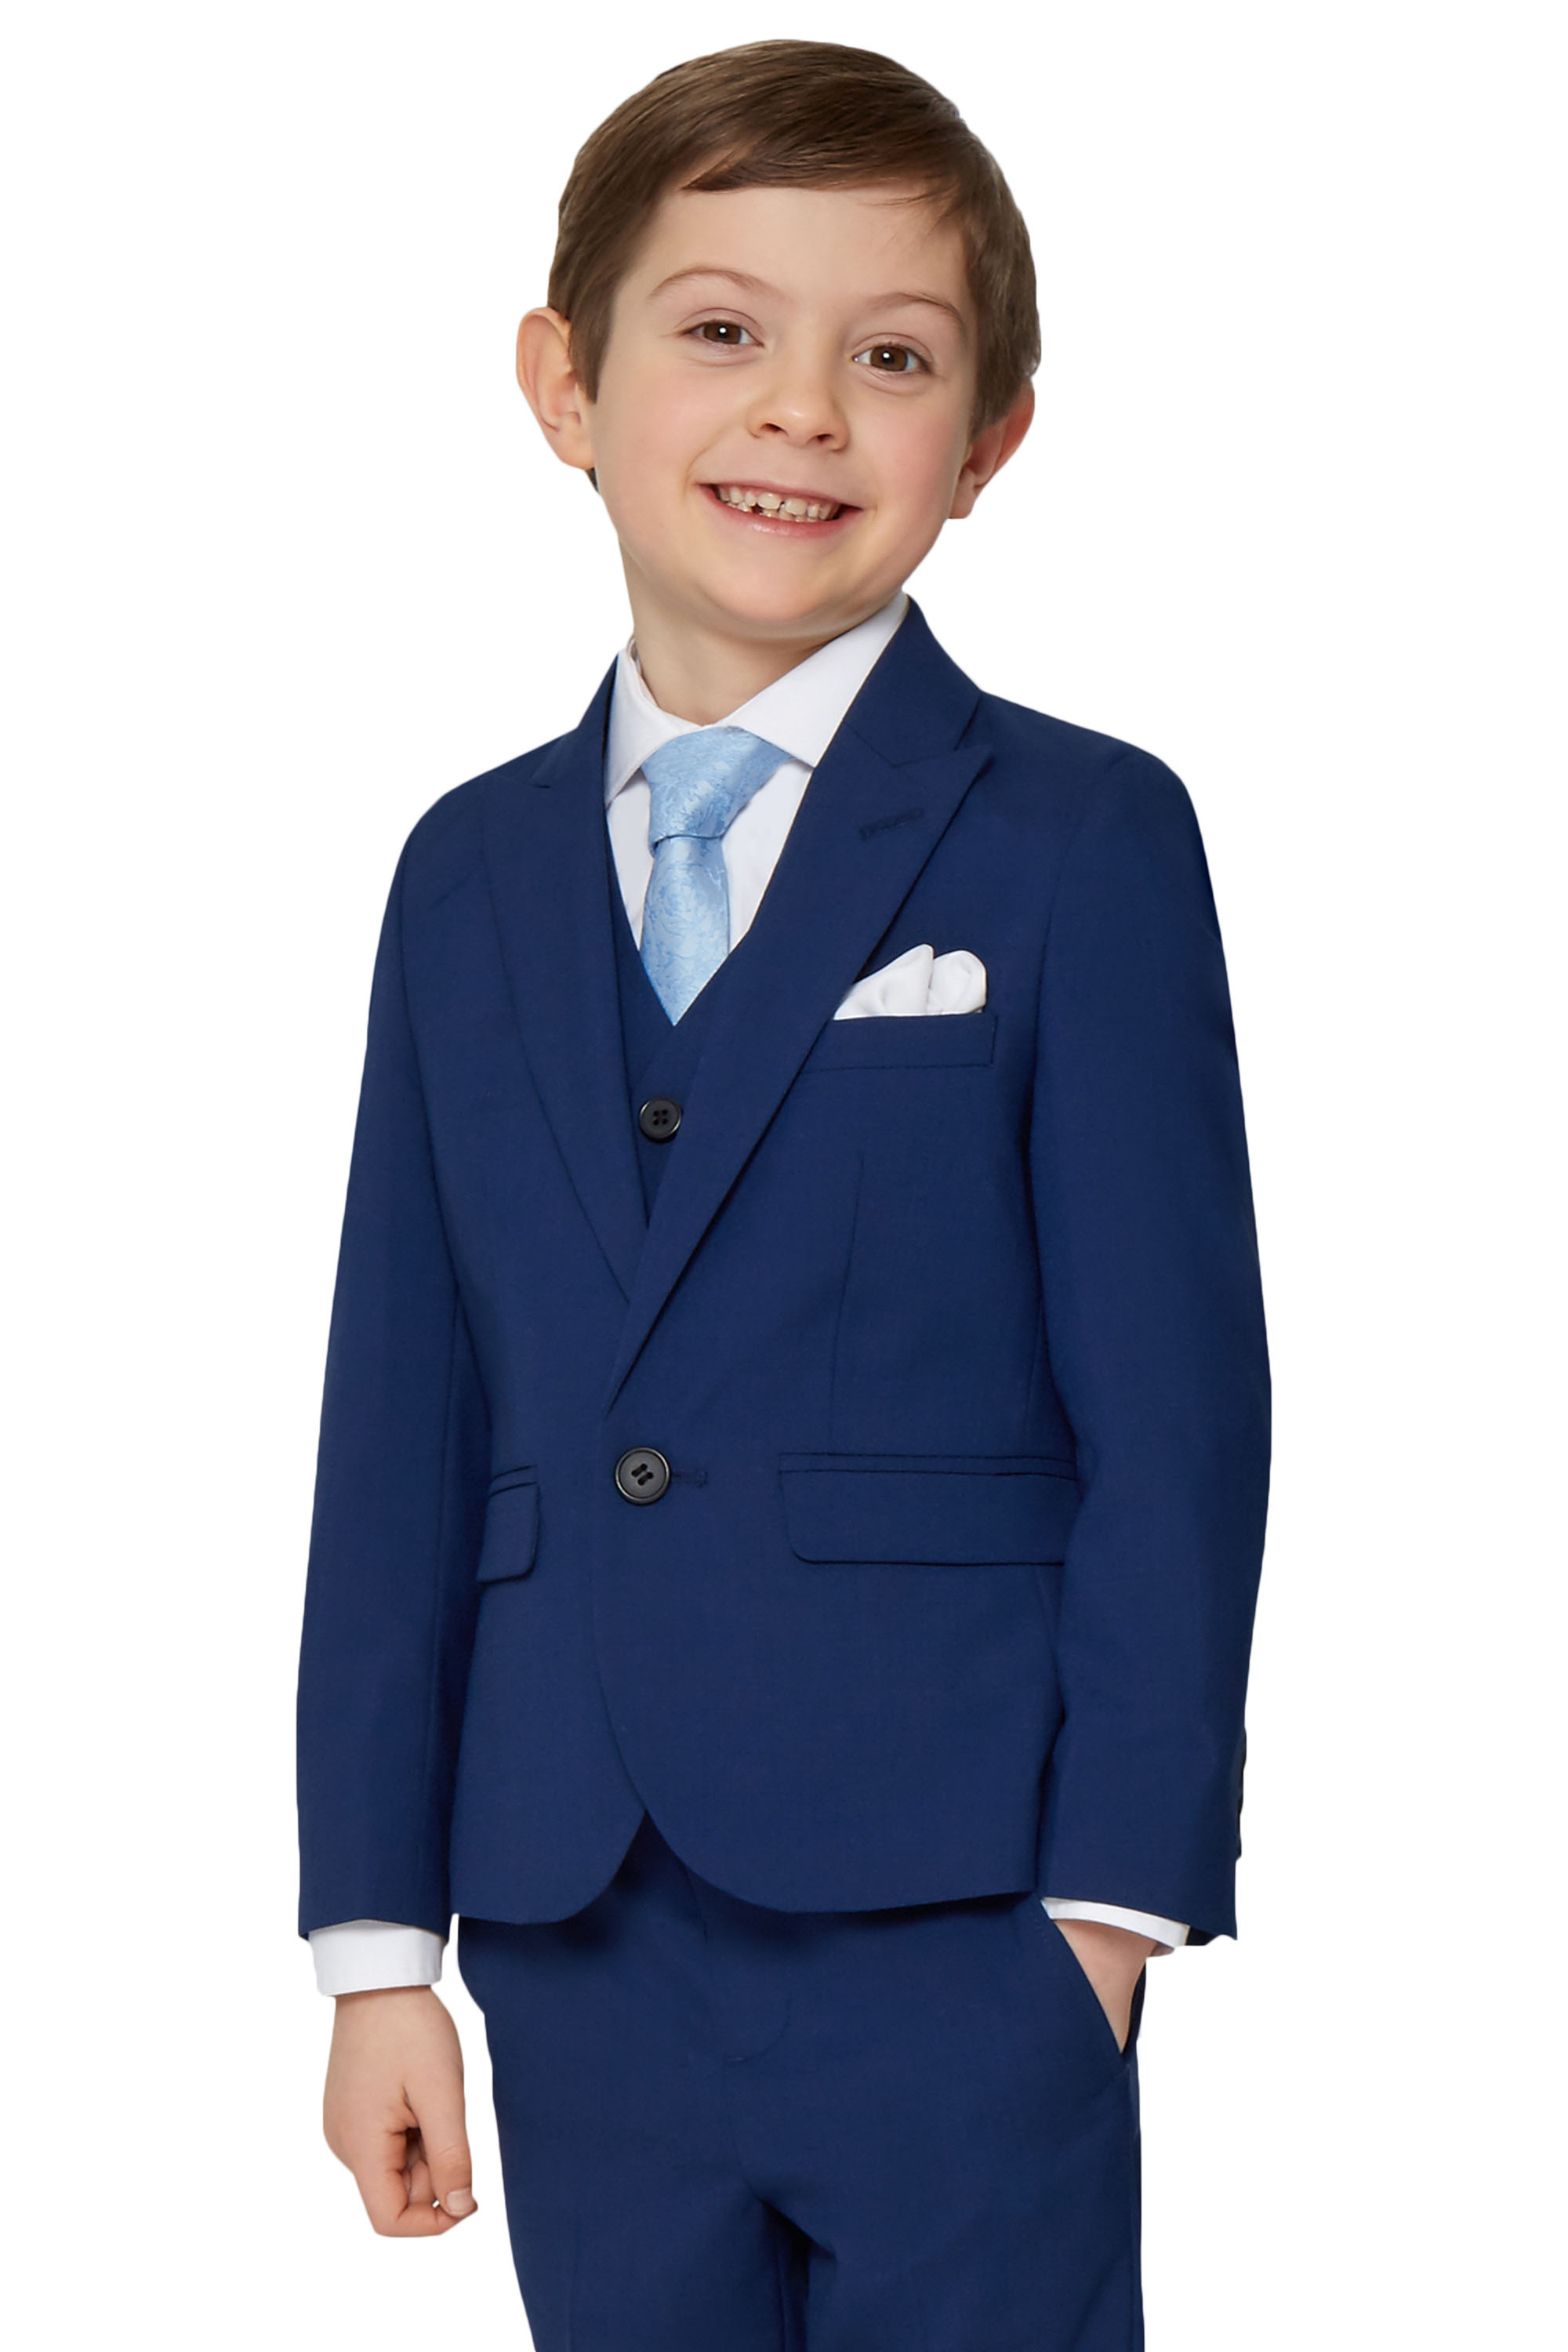 Details about French Connection Boys Formal Navy Blue Suit Jacket One  Button Kids Blazer